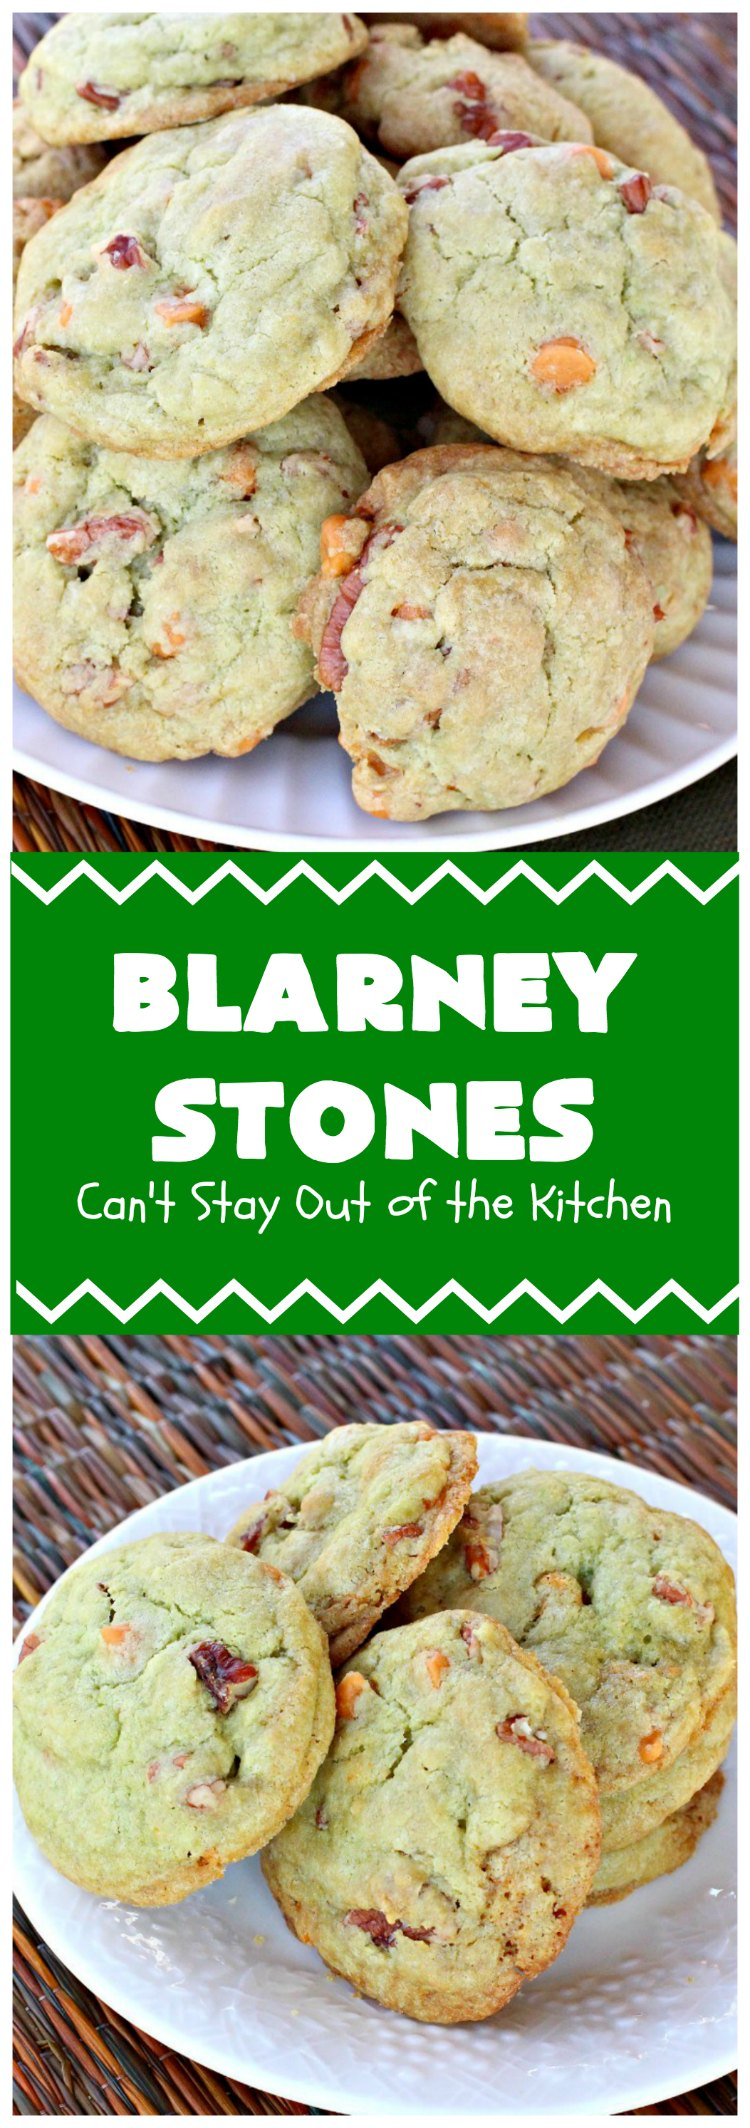 Blarney Stones | Can't Stay Out of the Kitchen | Enjoy the luck of the #Irish with these fantastic #cookies. They're made with #pecans, #PistachioPuddingMix, #AlmondExtract & #ButterscotchMorsels & are so mouthwatering. They are terrific for #tailgating or #holiday parties. #dessert #ChristmasCookieExchange #StPatricksDay #BlarneyStones